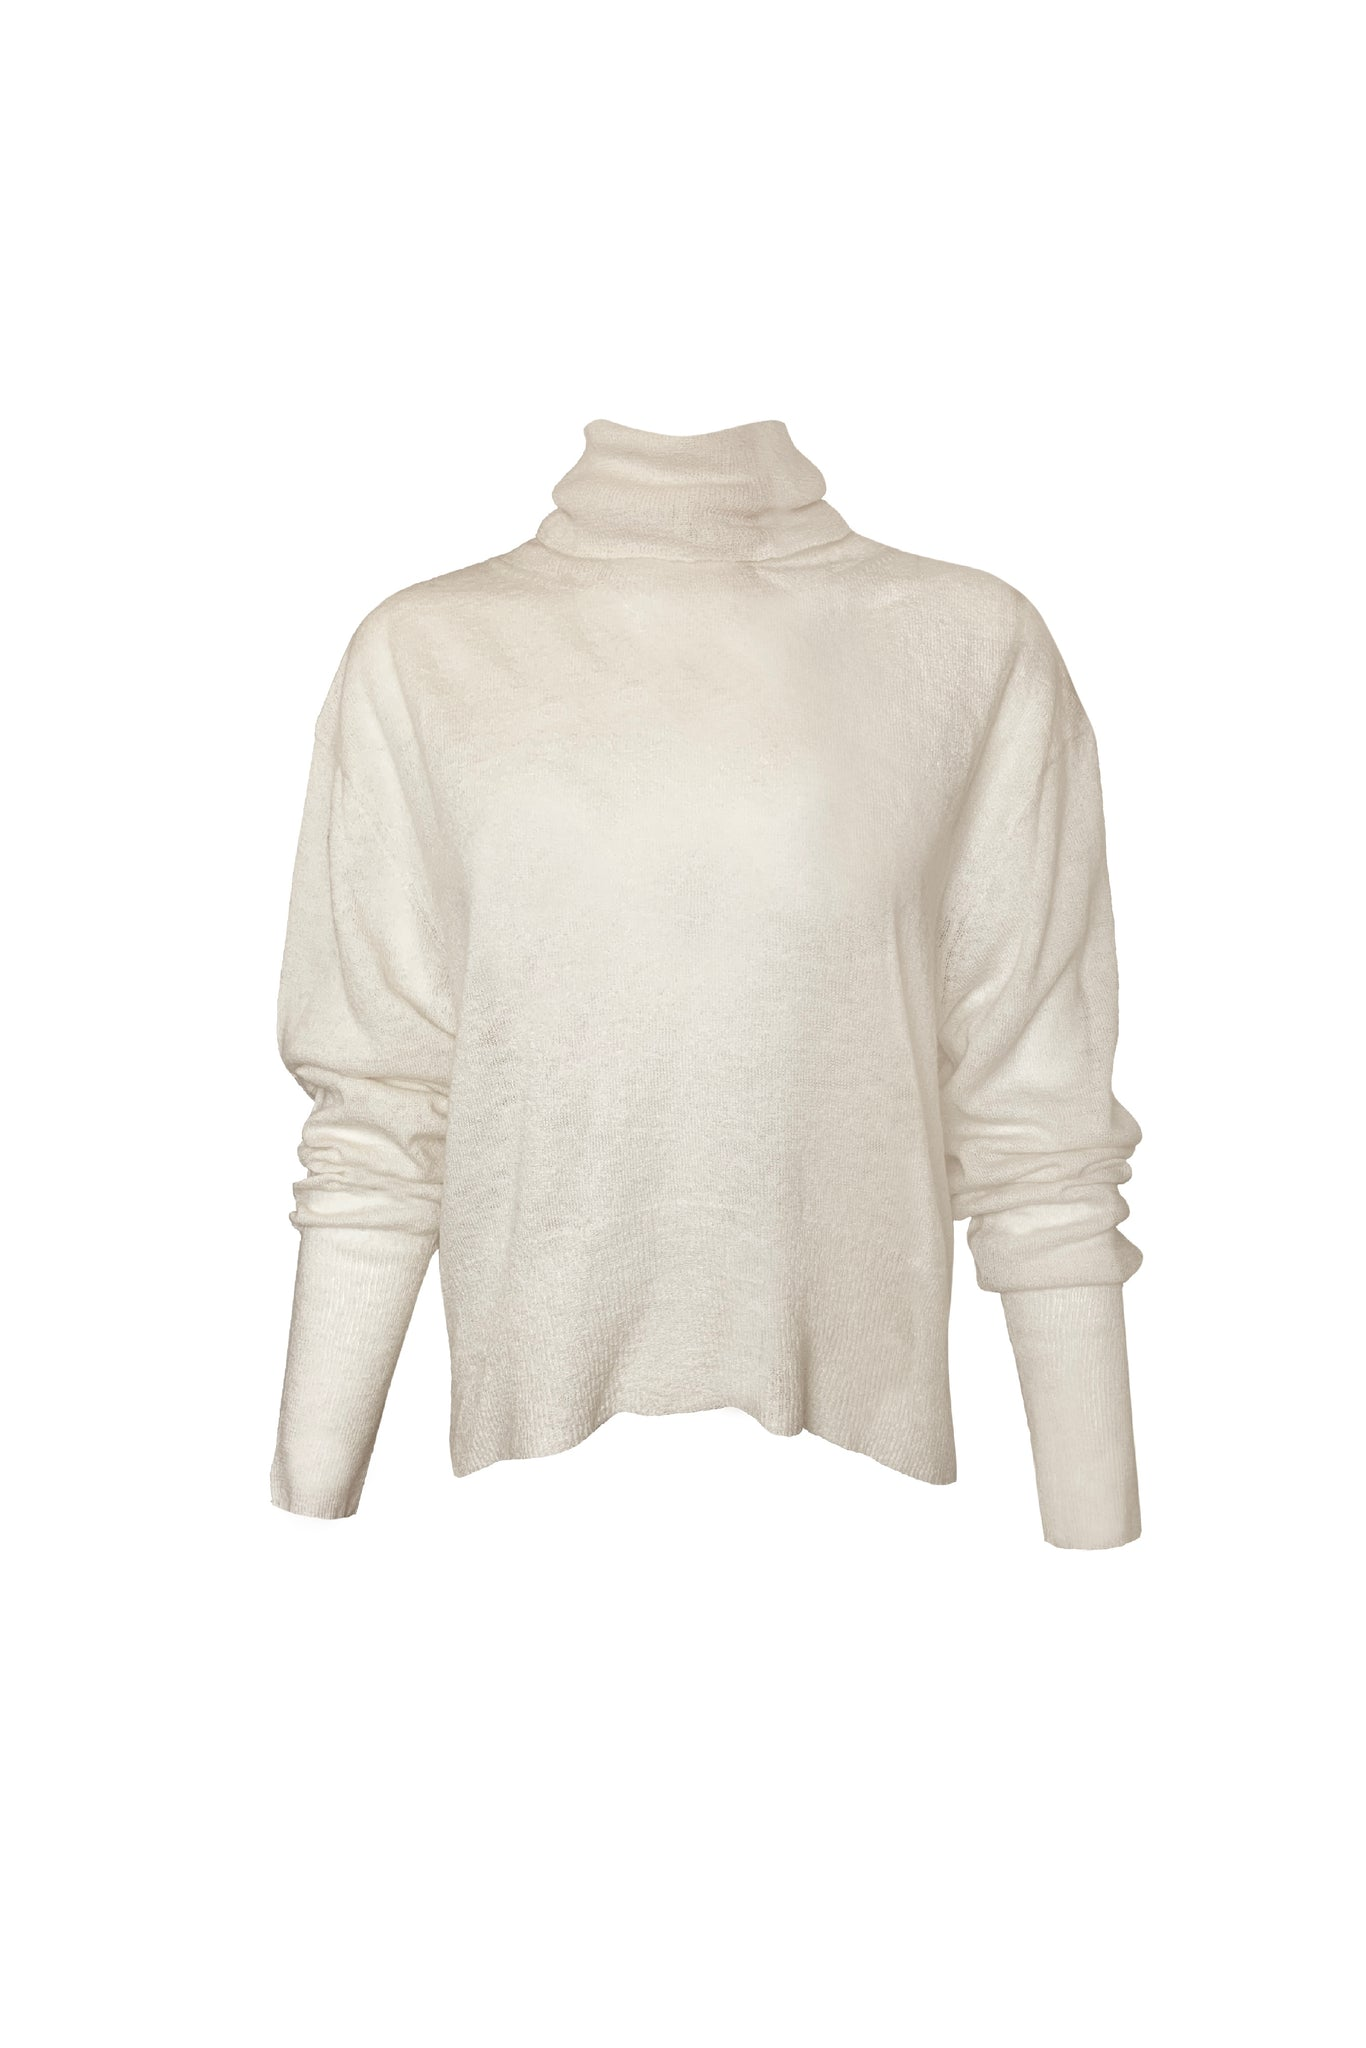 KES X Lars Turtleneck Pullover - Natural